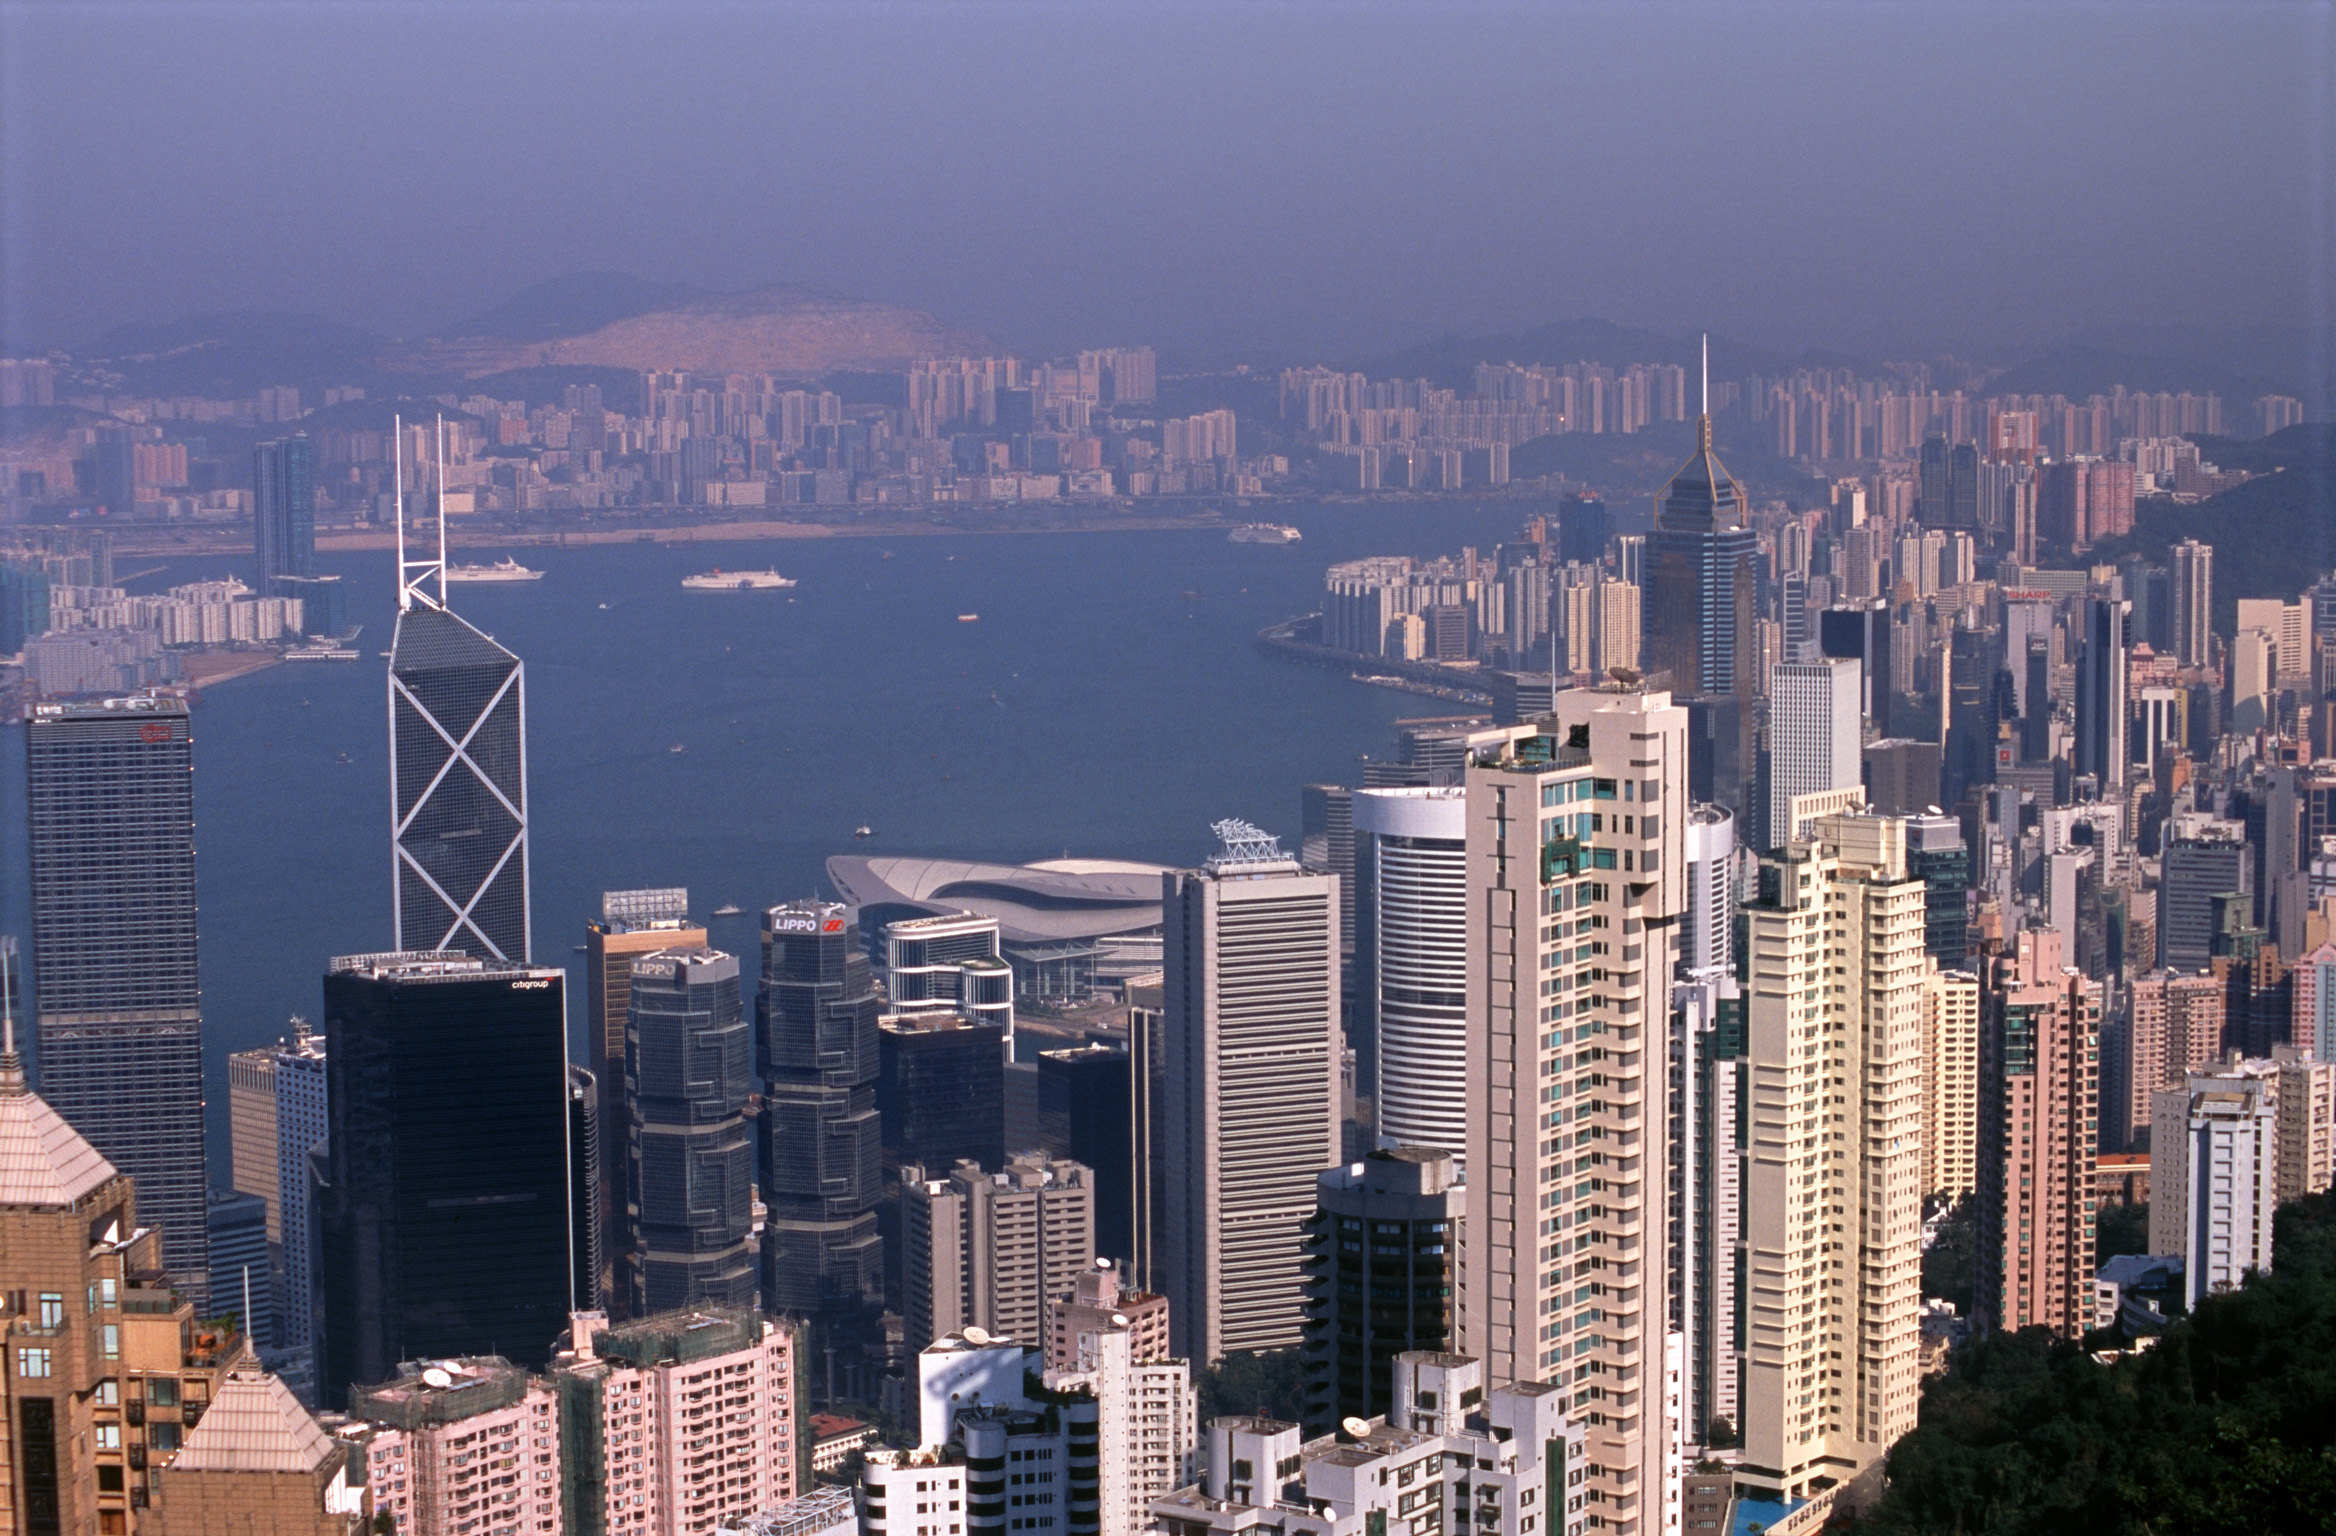 Overview of Hong Kong from Victoria Peak on Hazy Day, Hong Kong, China